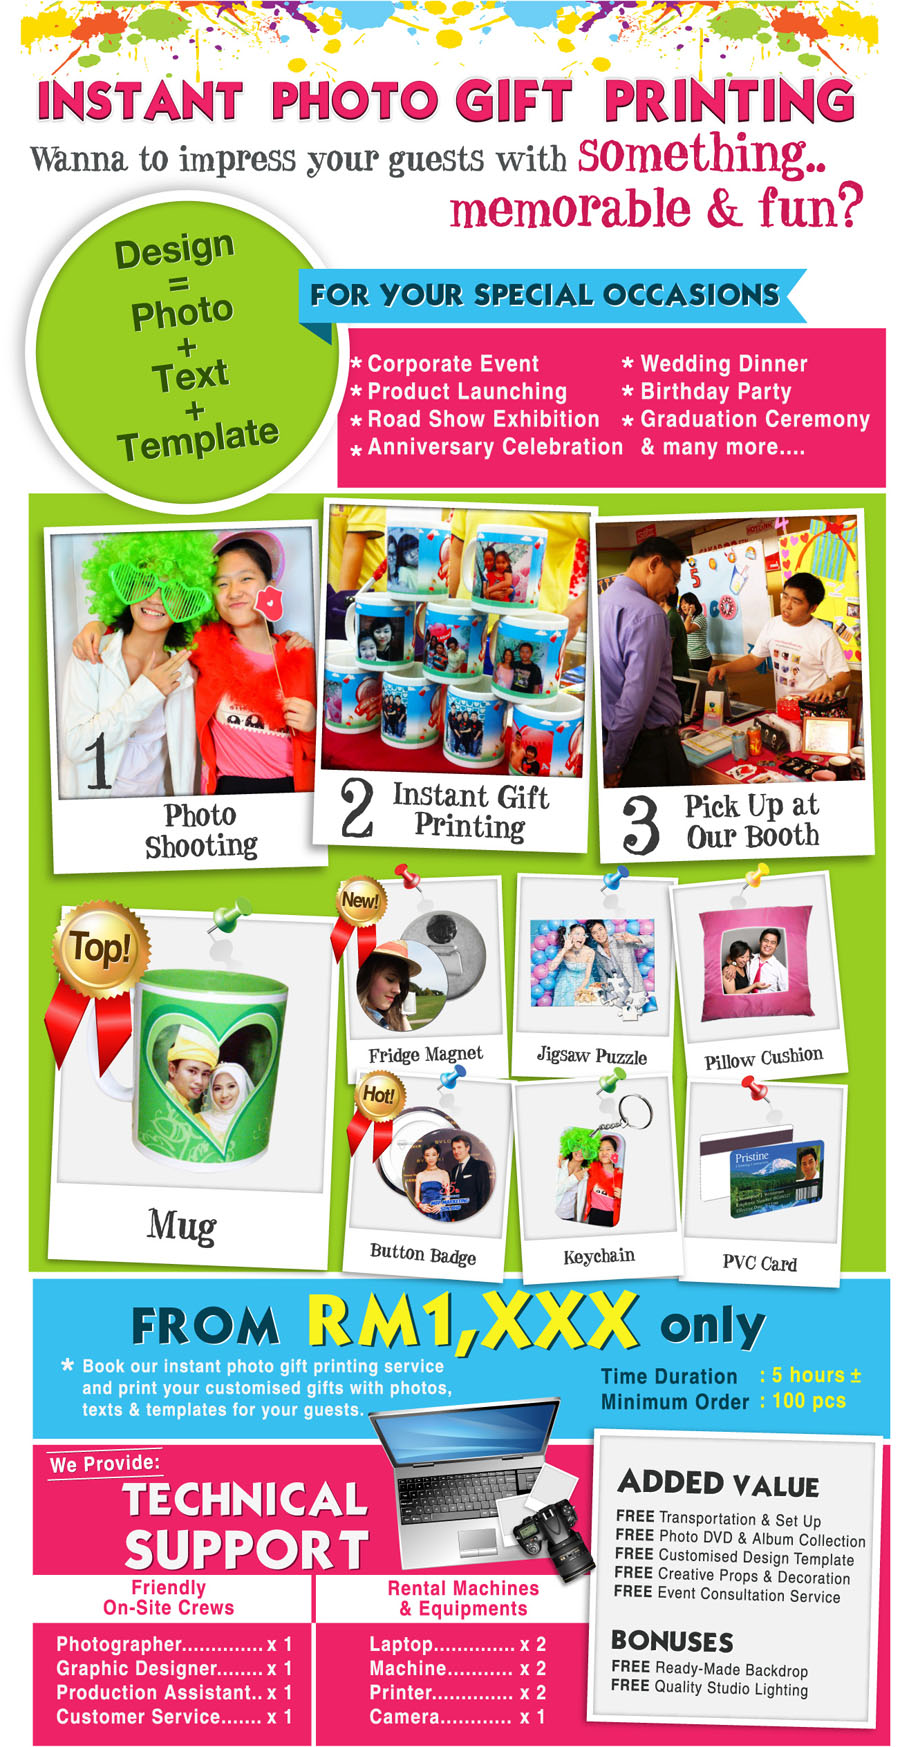 Instant Photo Gift Printing